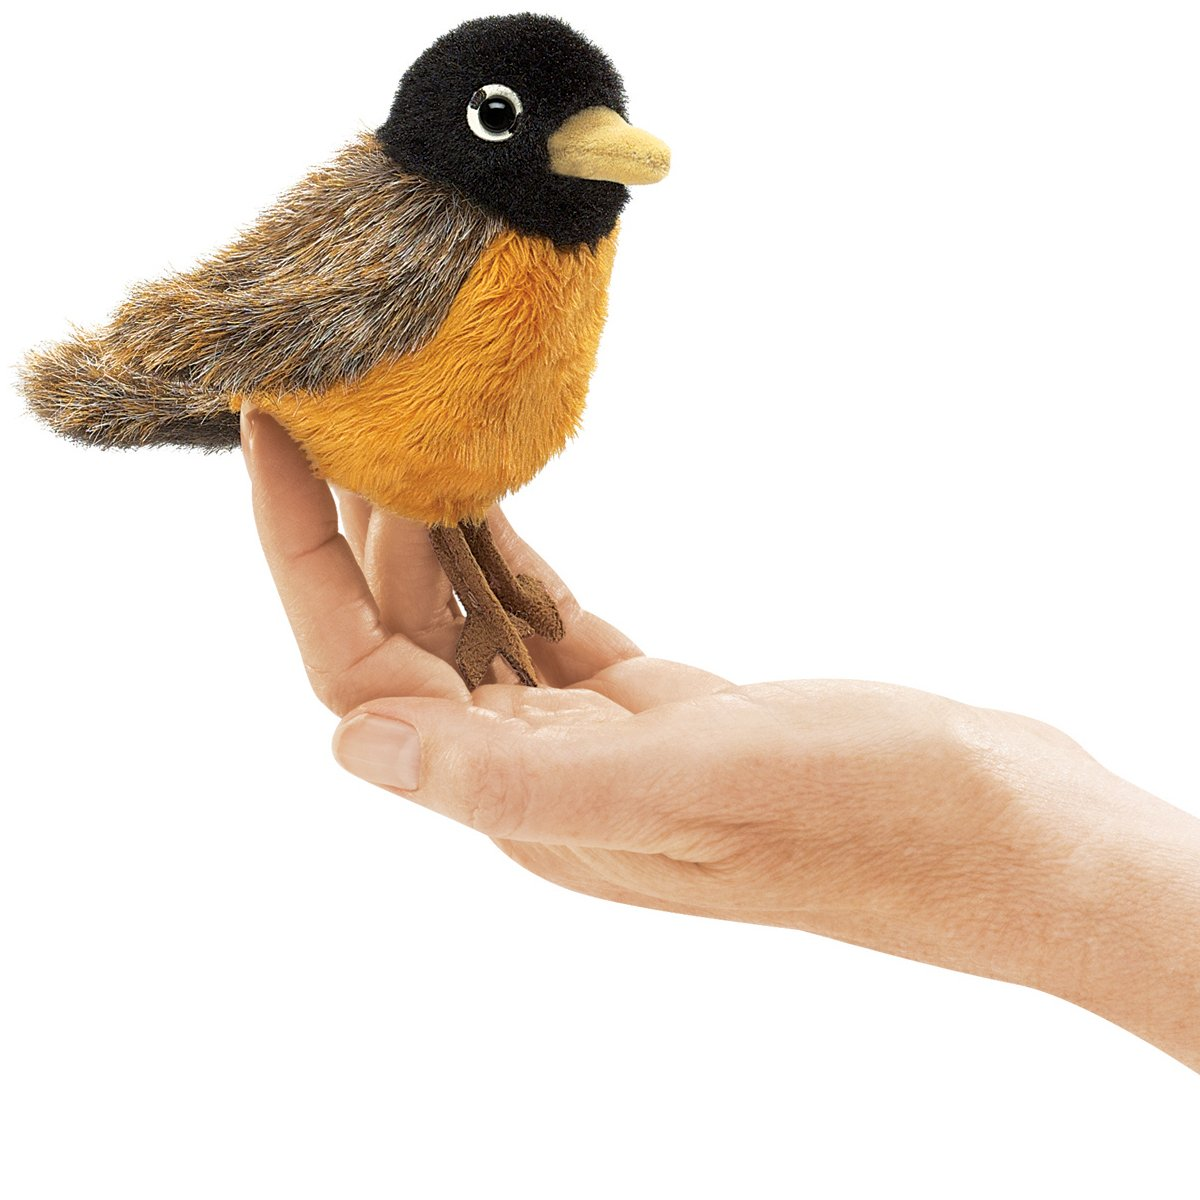 Folkmanis Mini Robin Finger Puppet Easily animate this engaging Robin bird plush puppet on your finger, or snuggle in the palm of your hand Ideal for stage and puppet theater, storytelling, teaching, daycare, pre-school, pretend play, role-playing, presentations, games, parties and gifts